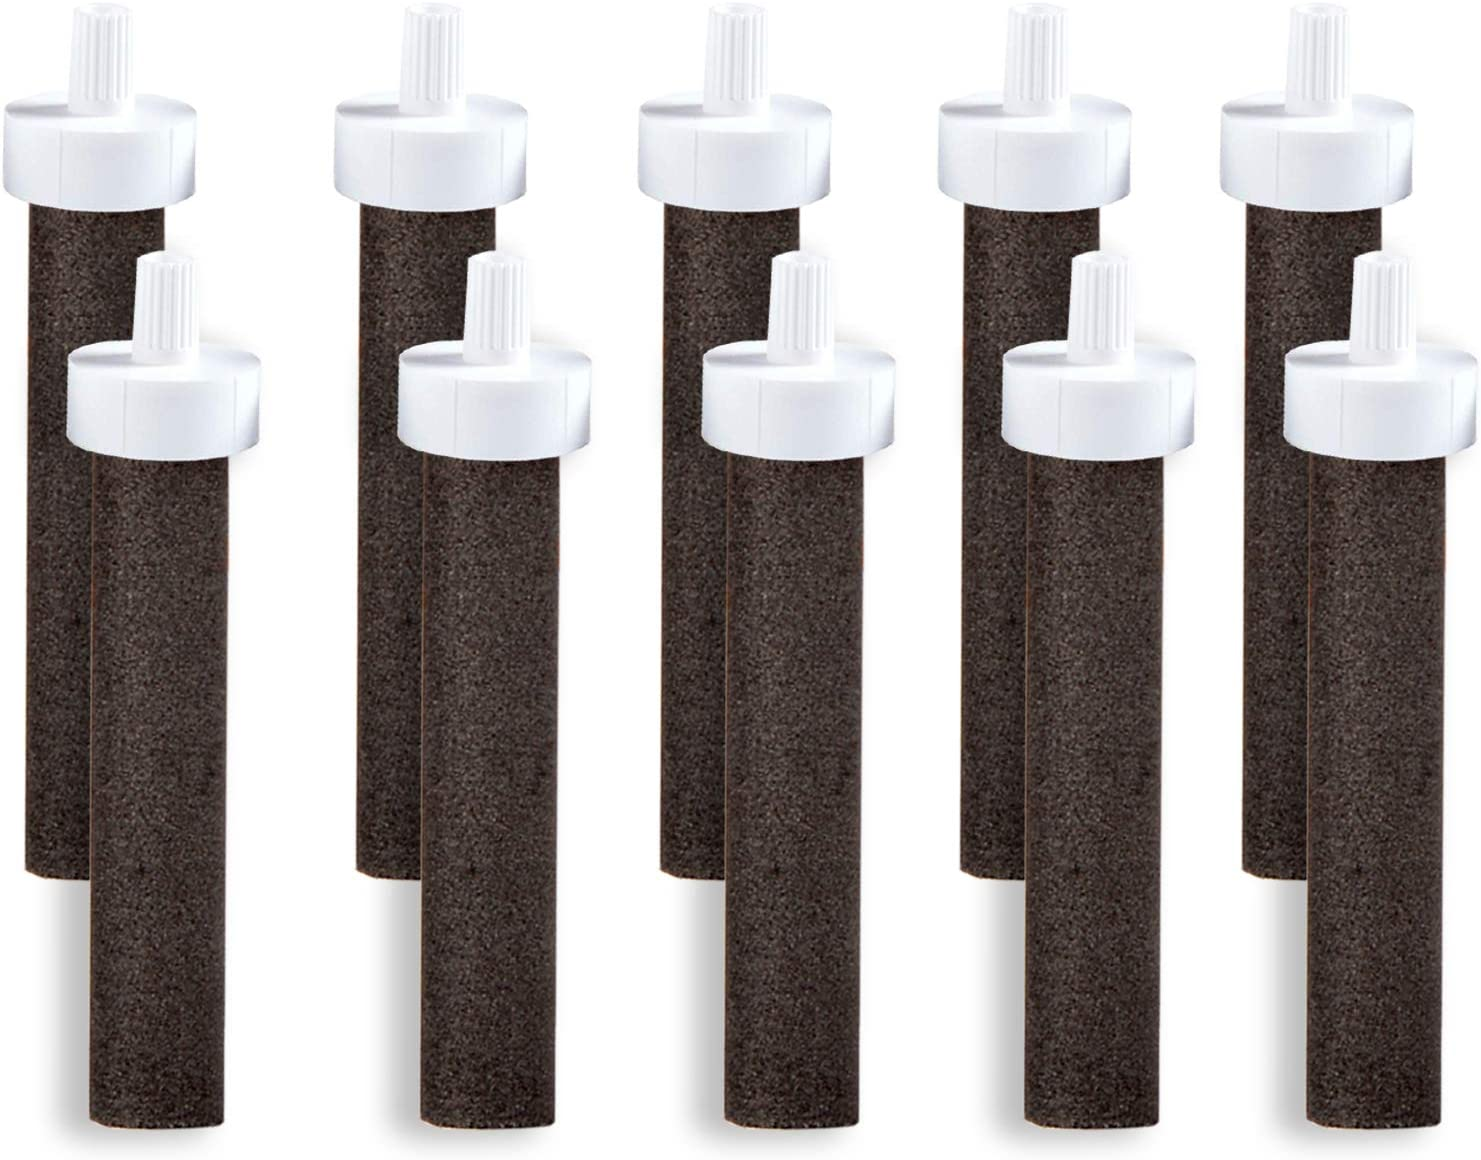 Arisll Filters Replacements for Super popular specialty store Brita Water Pack 10 BPA latest - Bottle